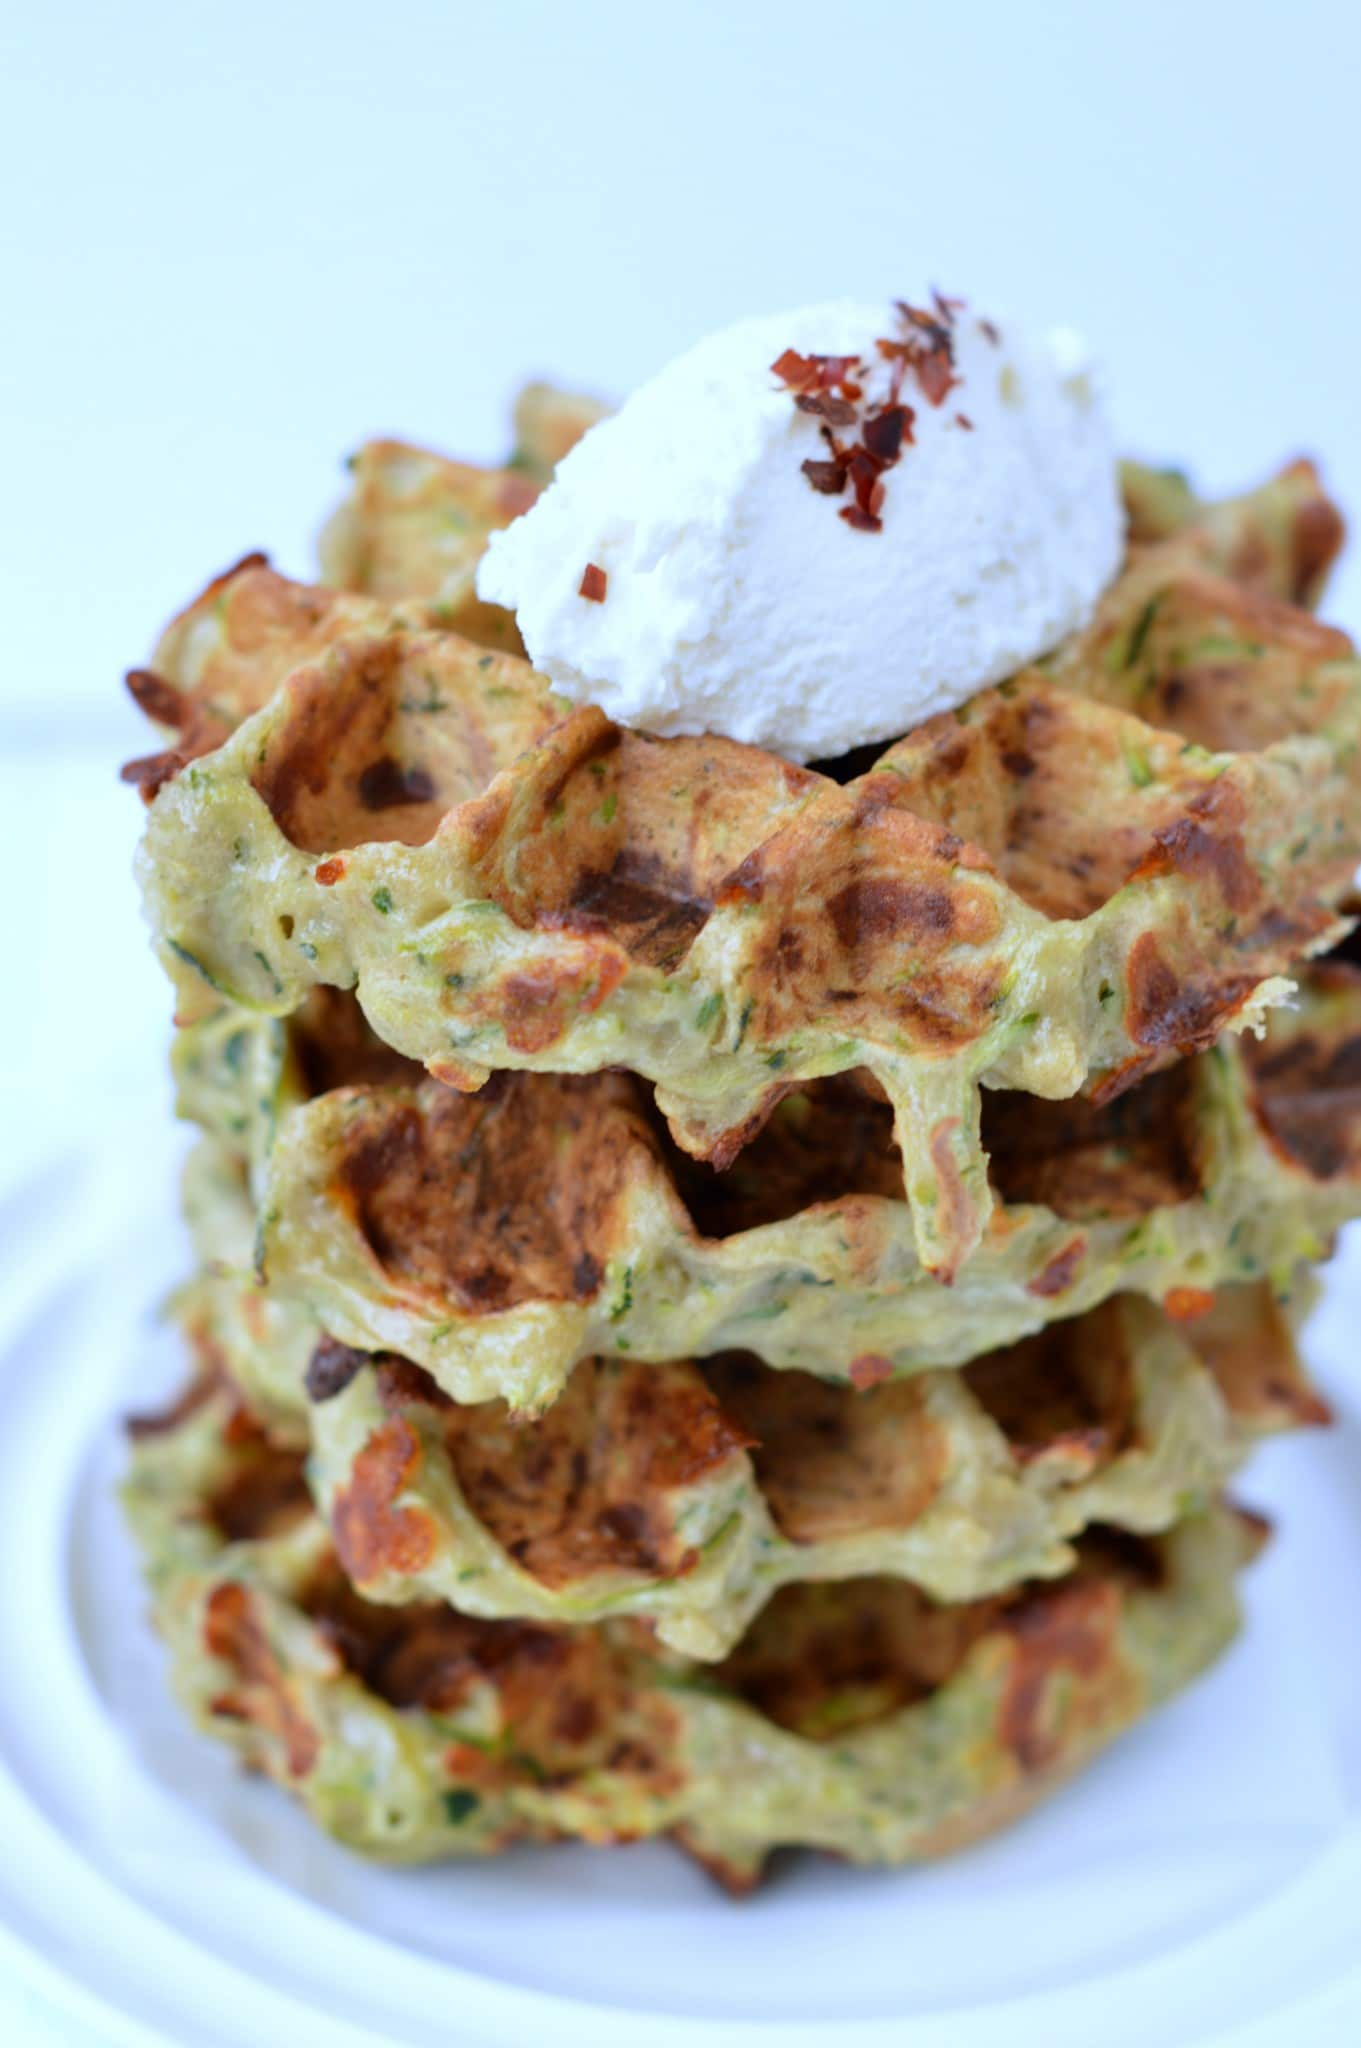 Gluten free Zucchini Waffles stuffed with grated zucchini and parmesan. An easy clean eating recipe for dinner or a tasty savory breakfast that all the family love